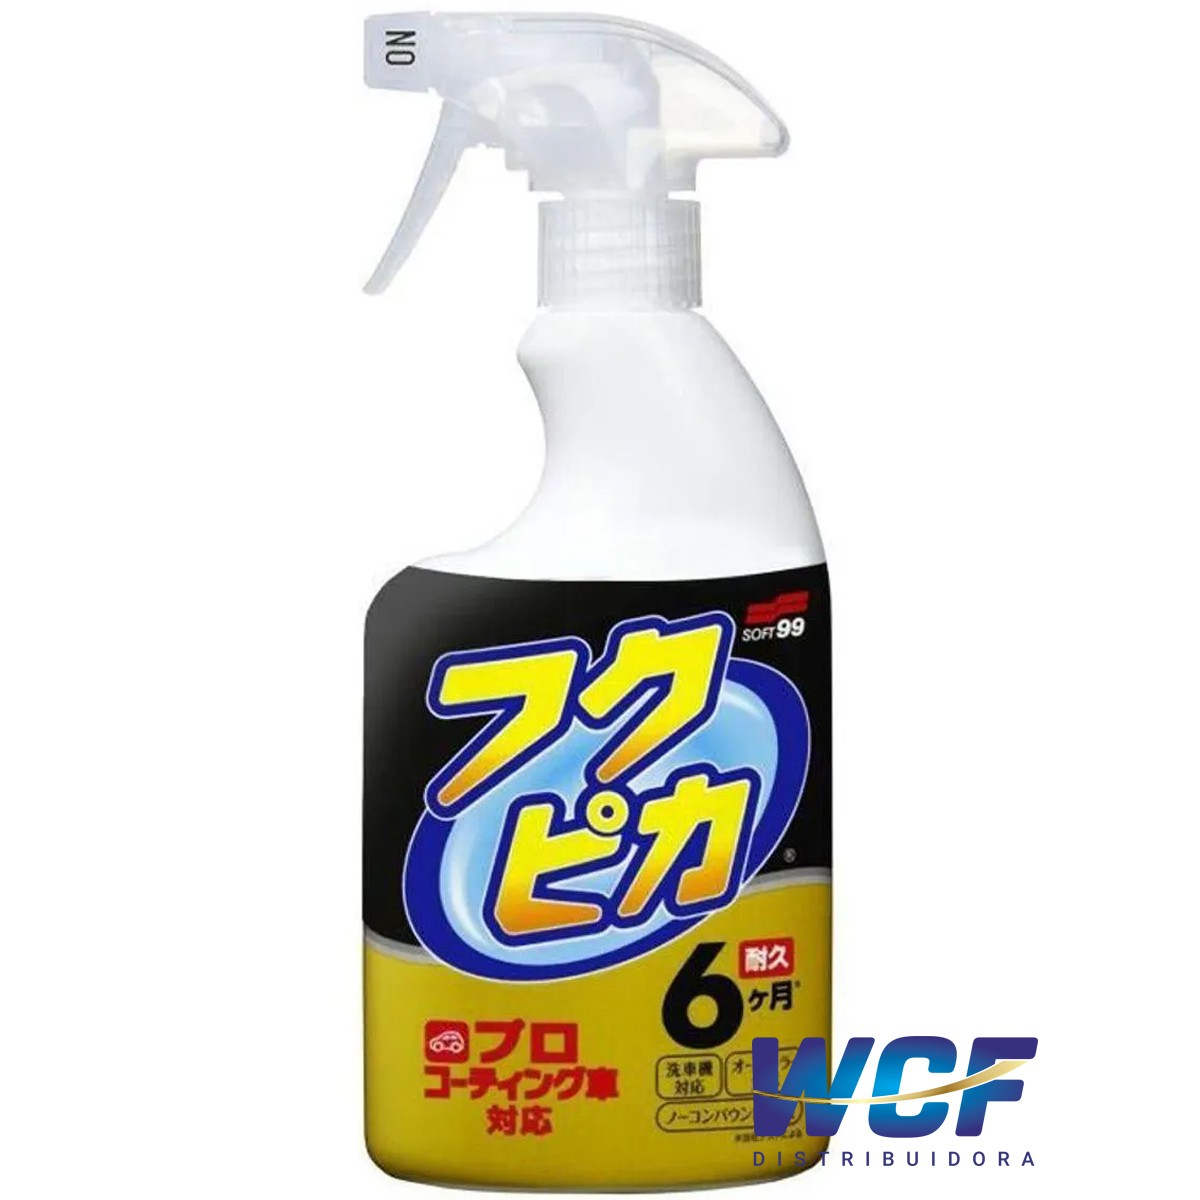 SOFT99 FUKUPIKA STRONG LIMPEZA SECO COM CERA 400 ML